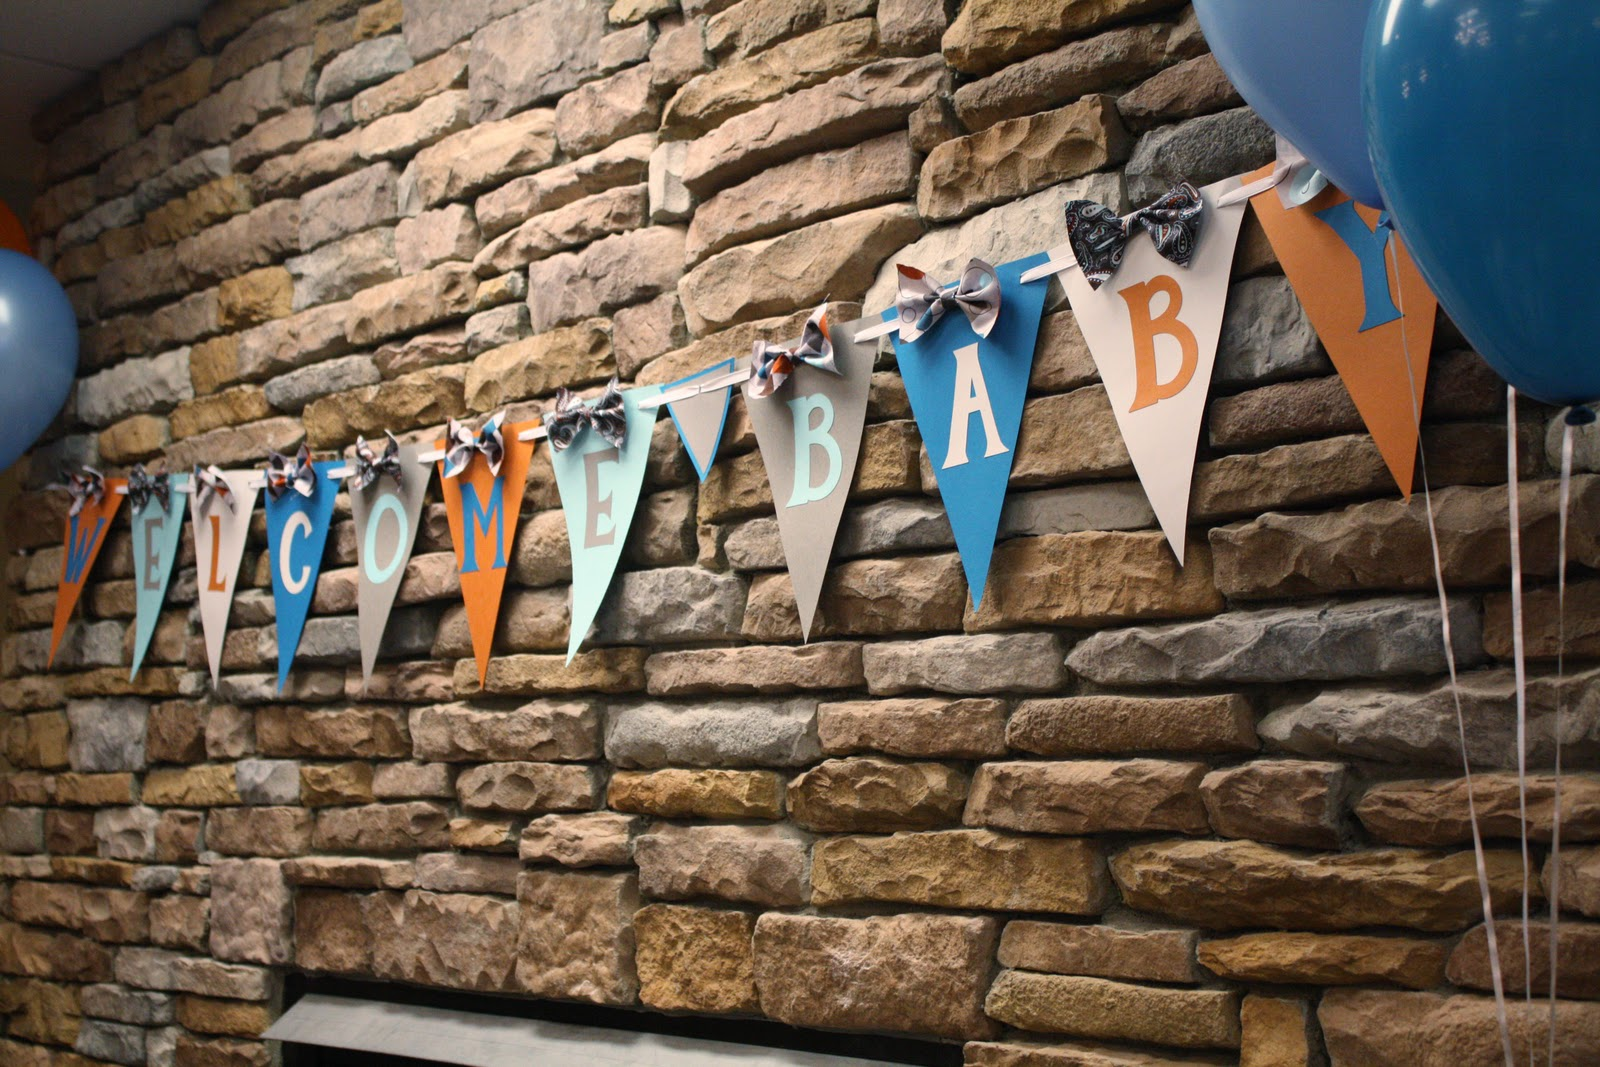 for more ideas on doing a bow tie themed shower you can check out the